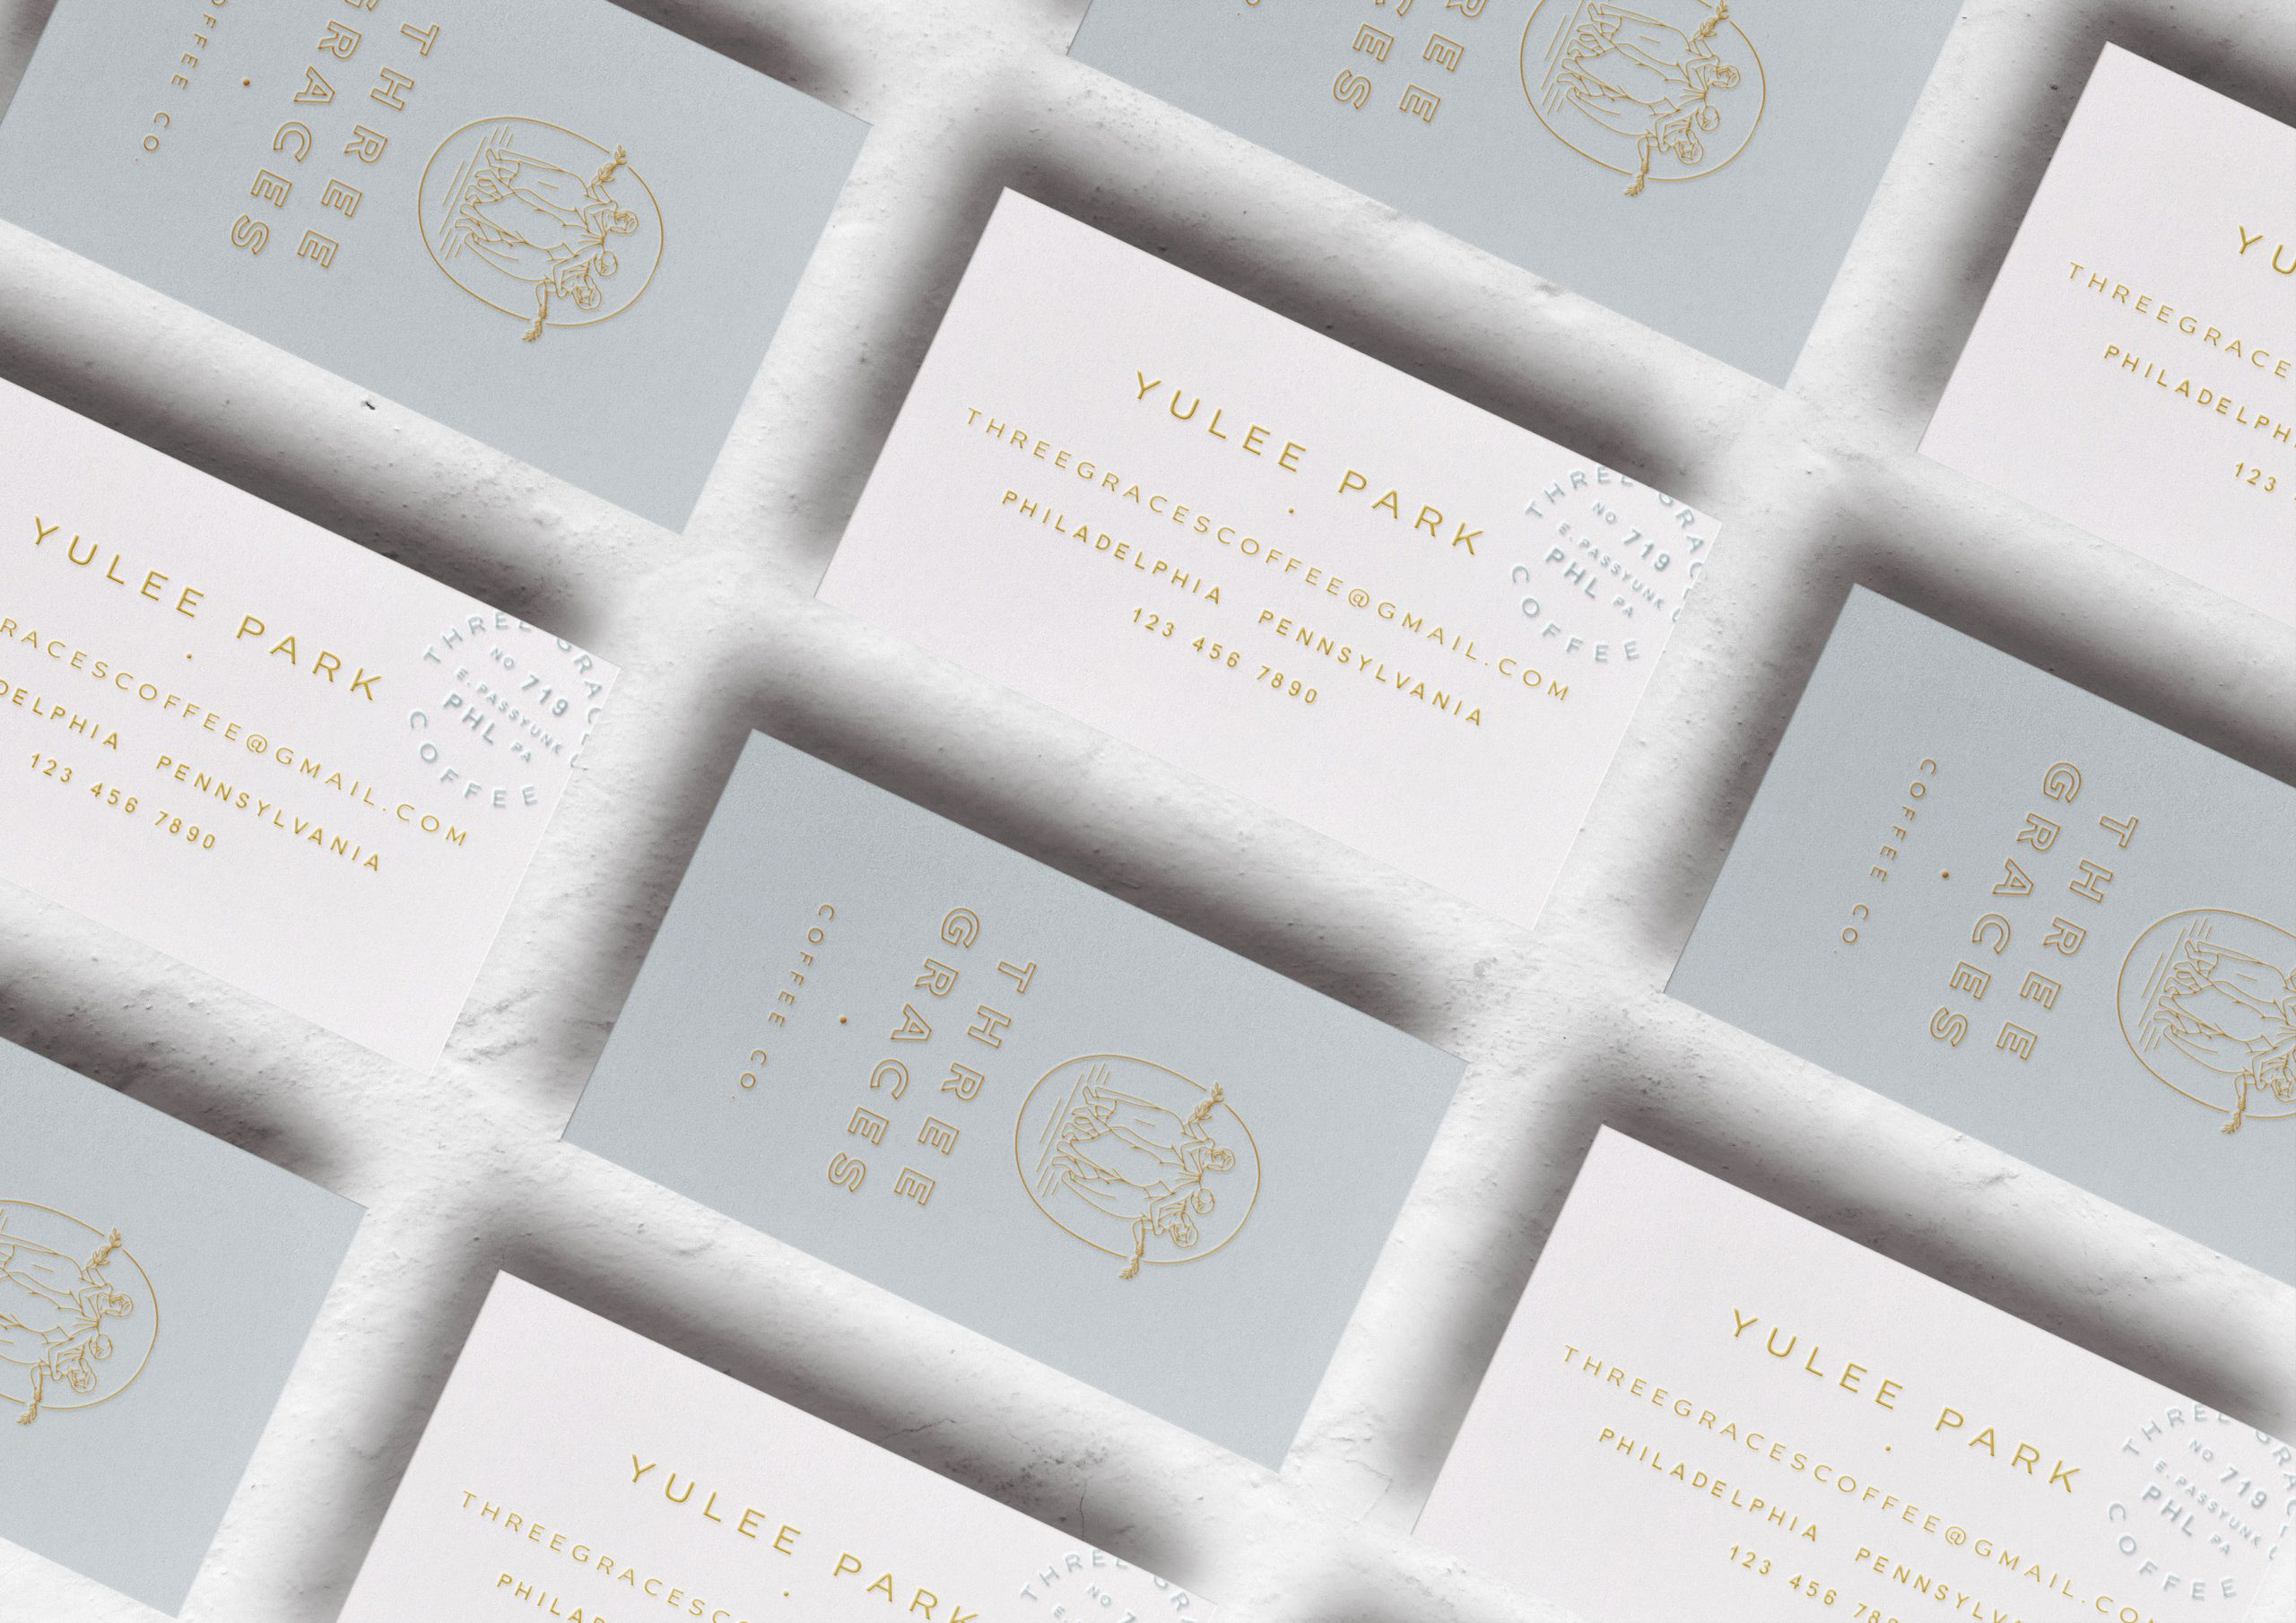 Three Graces Coffee business card